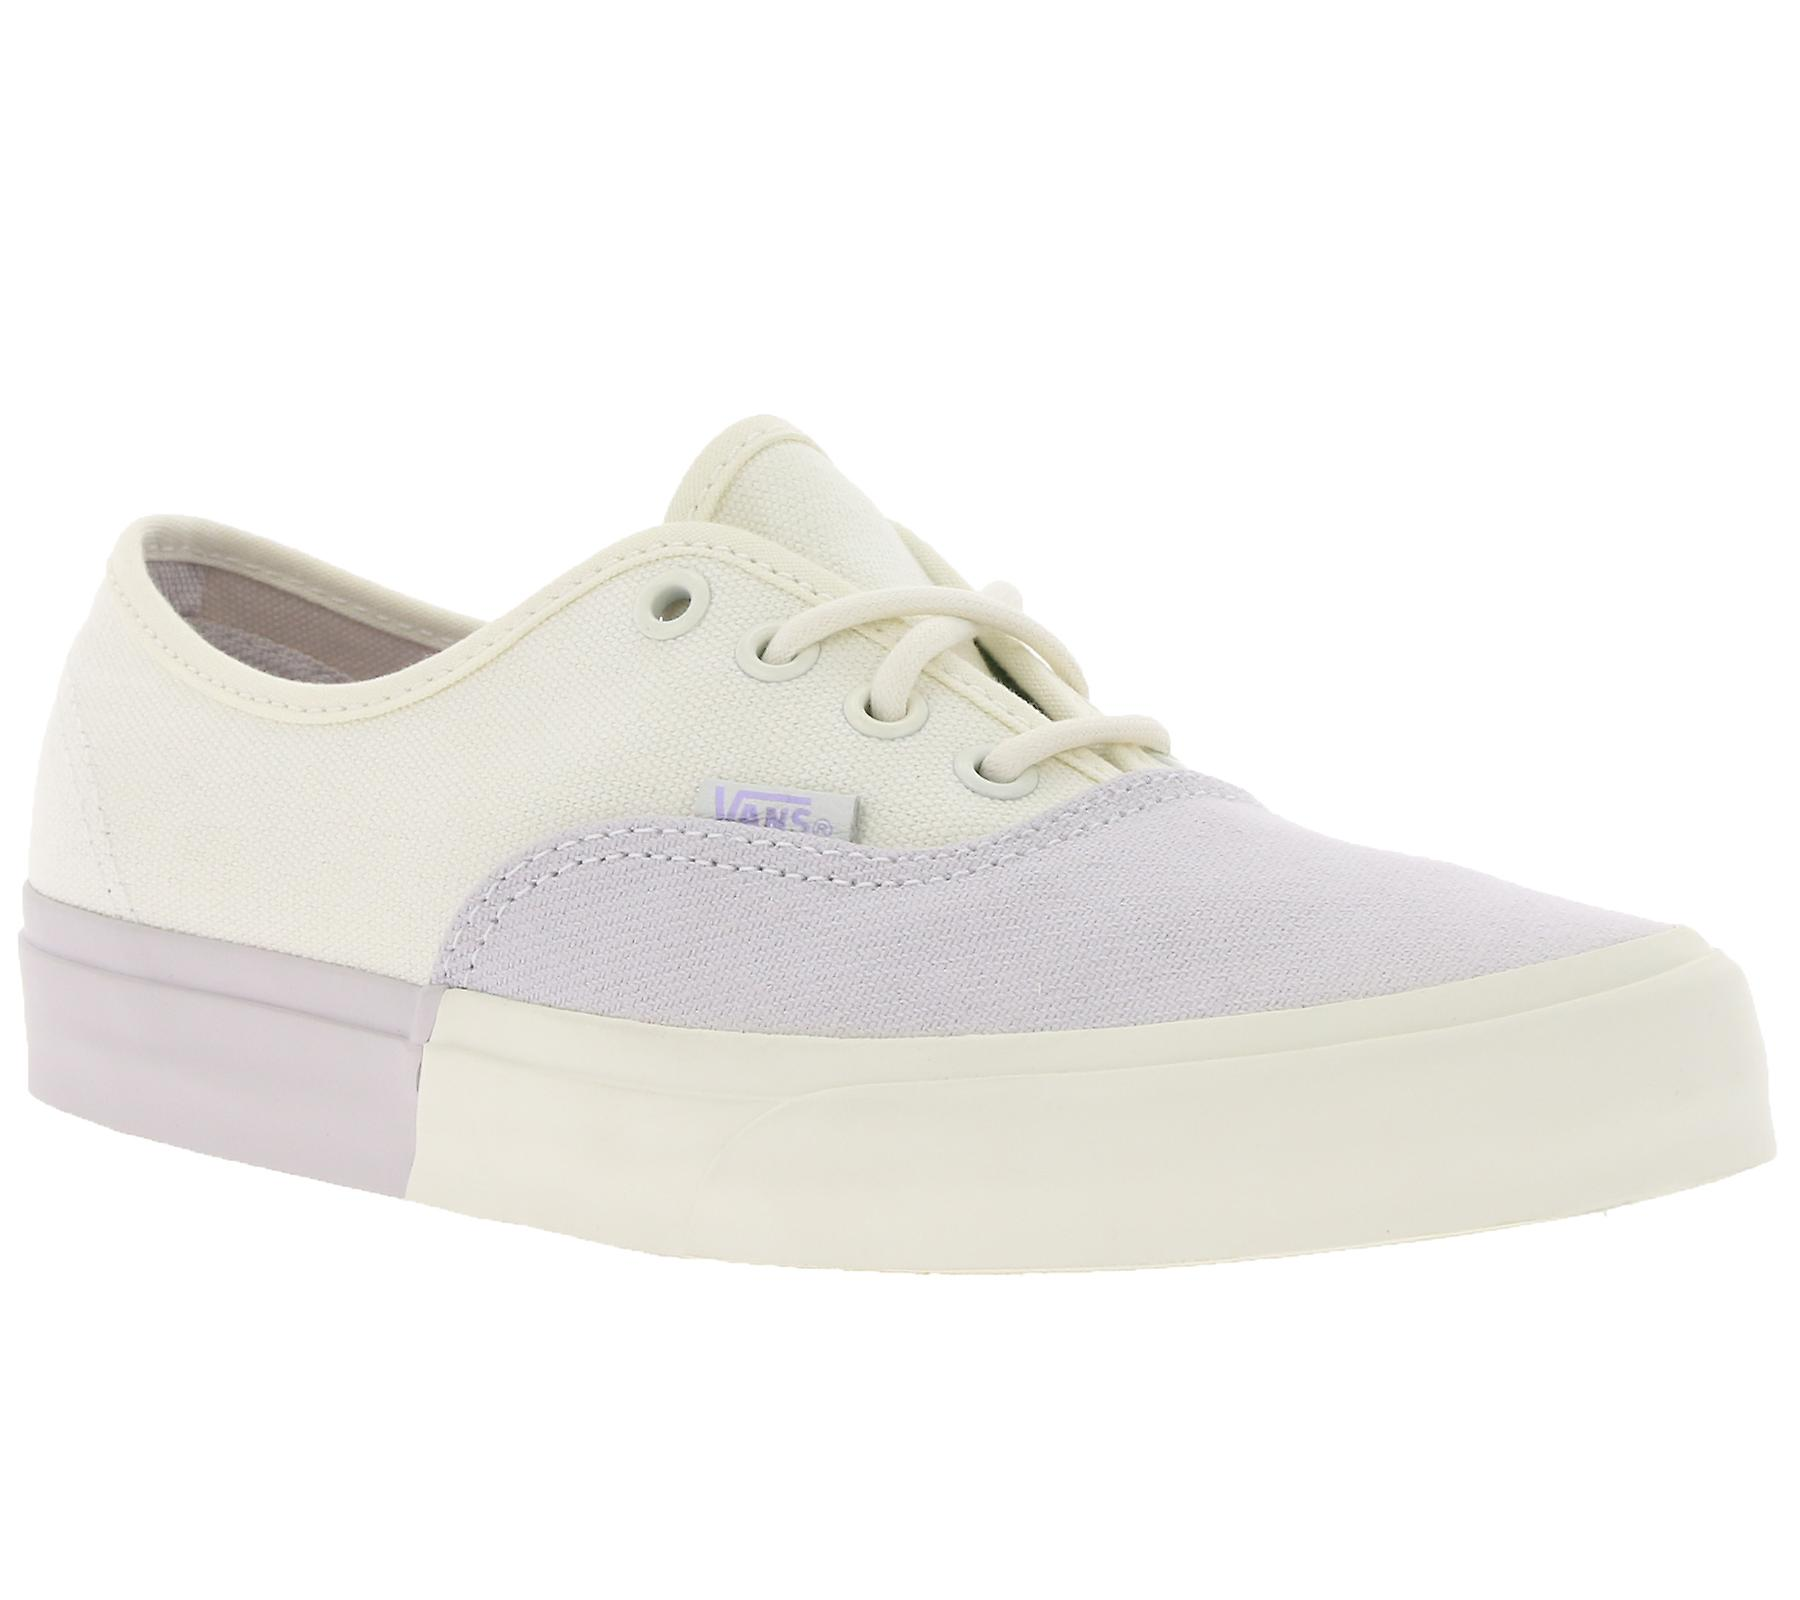 14991a0911ae74 Vans sneakers authentic DX shoes white